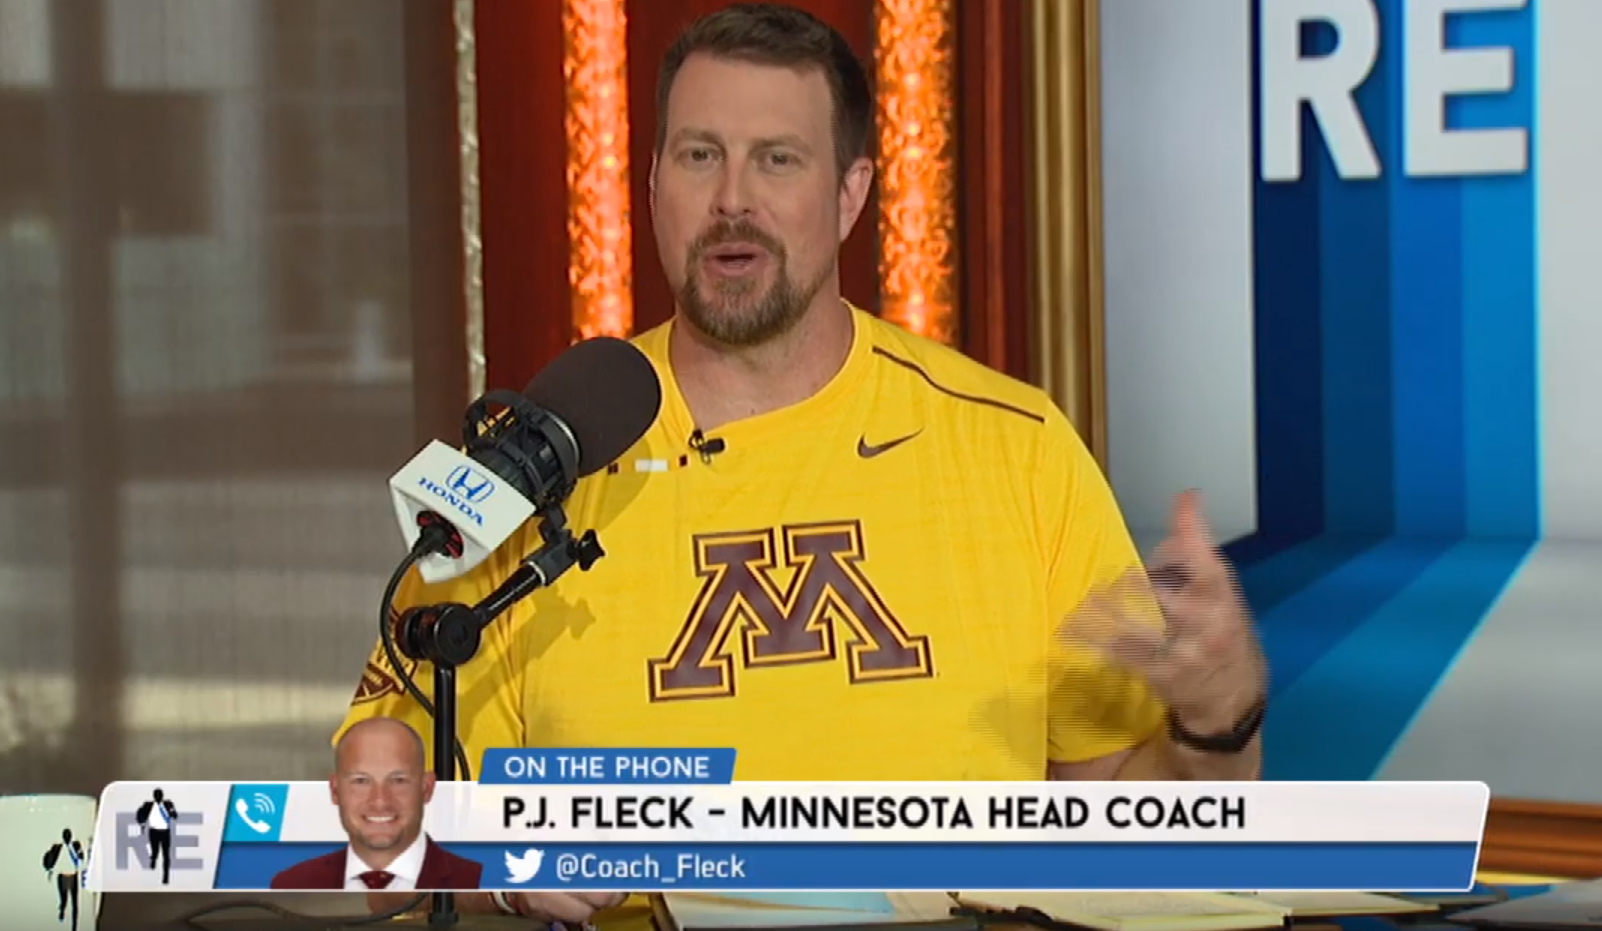 ESPN analyst Leaf on U football: 'I was the first one on the boat'